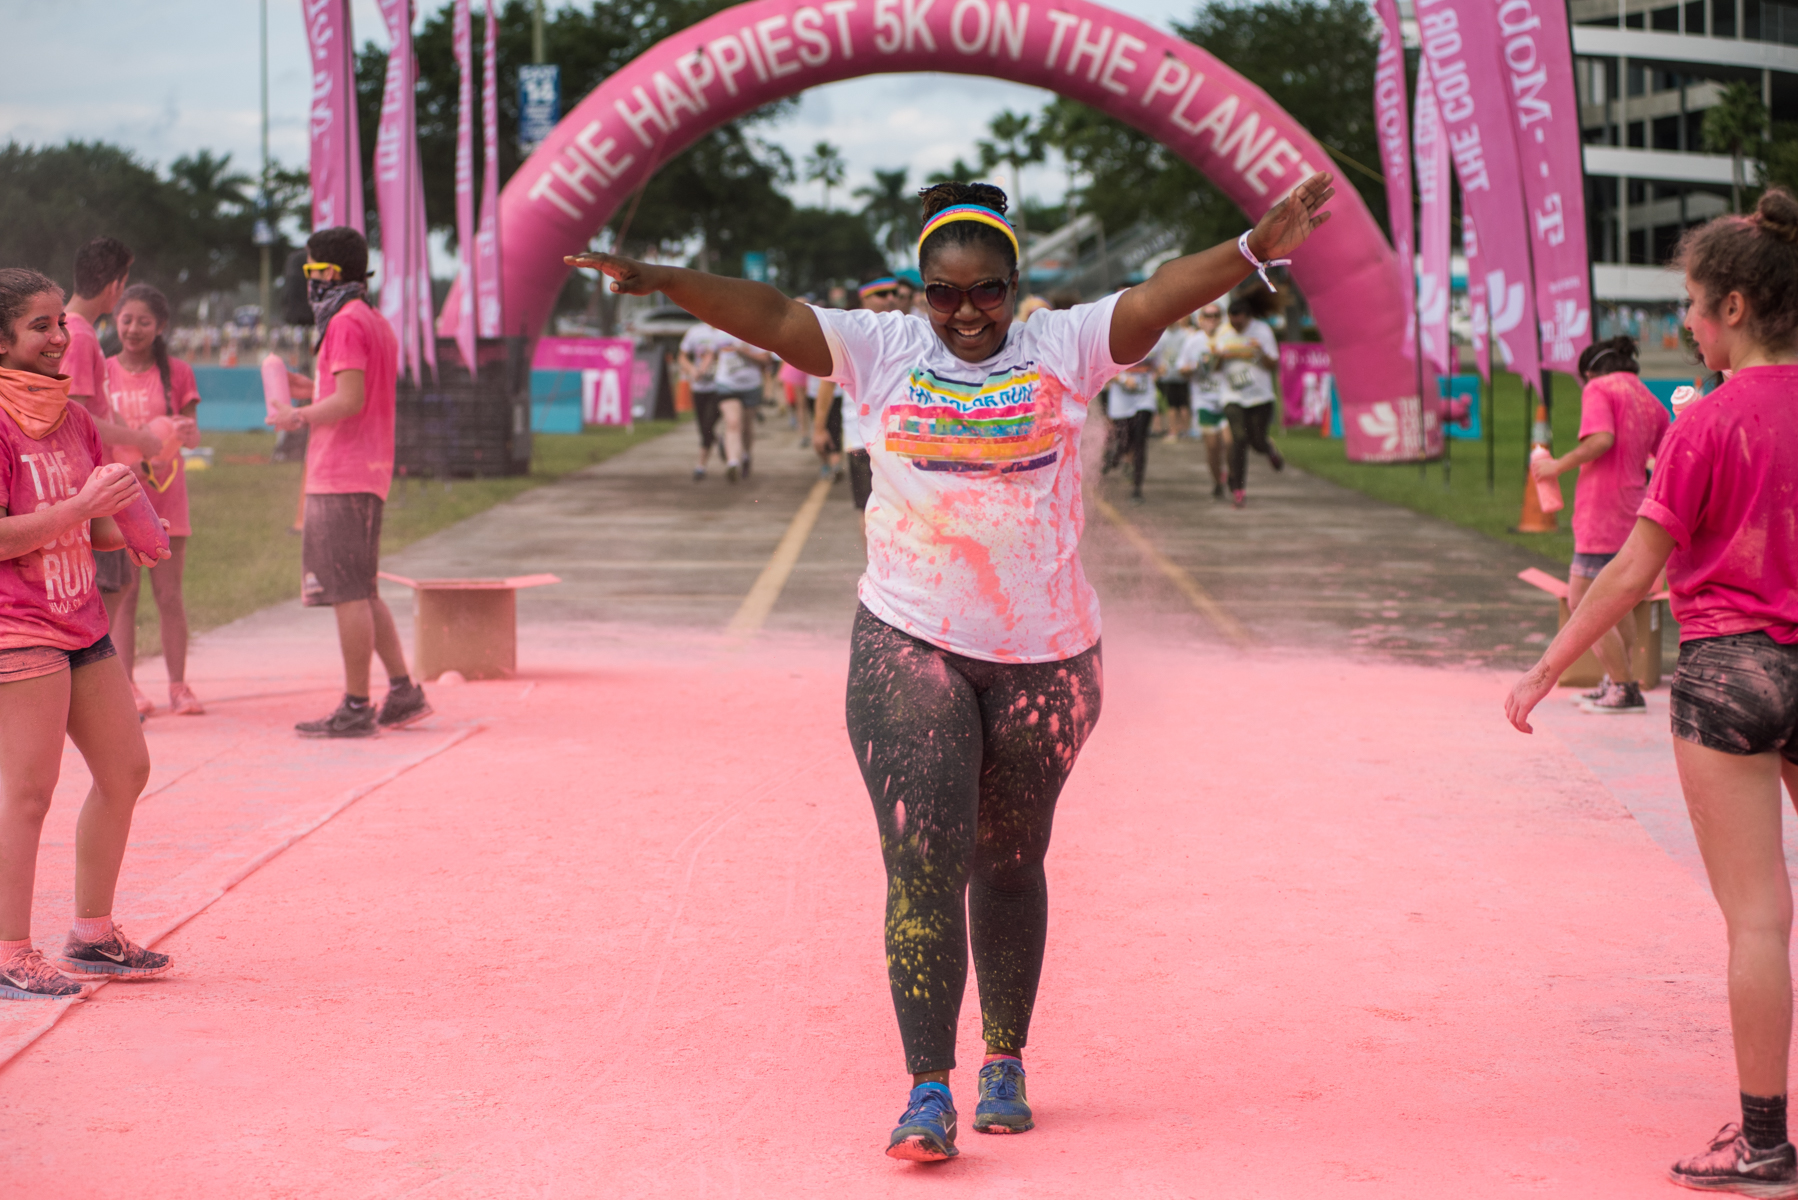 Color_Run-21.jpg